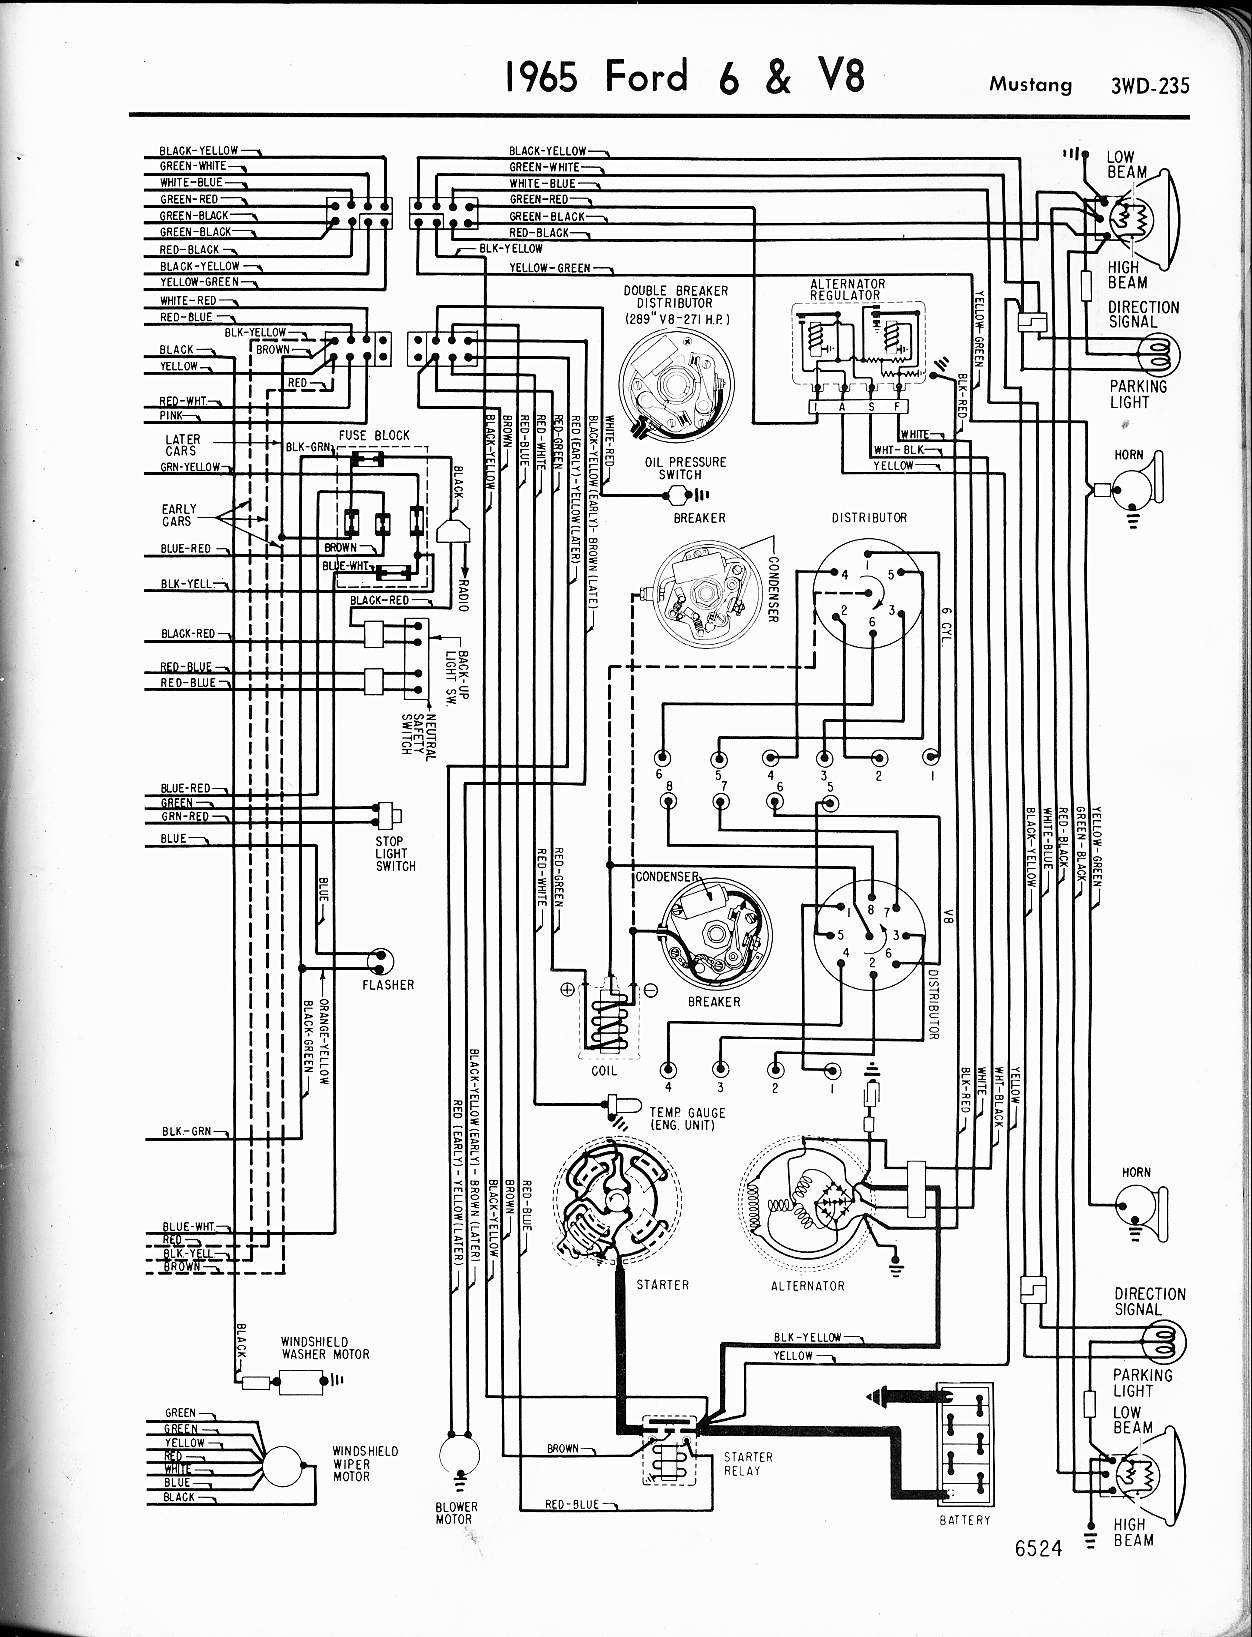 1965_mustang_wiring_2 ford diagrams old ford wiring harness at alyssarenee.co